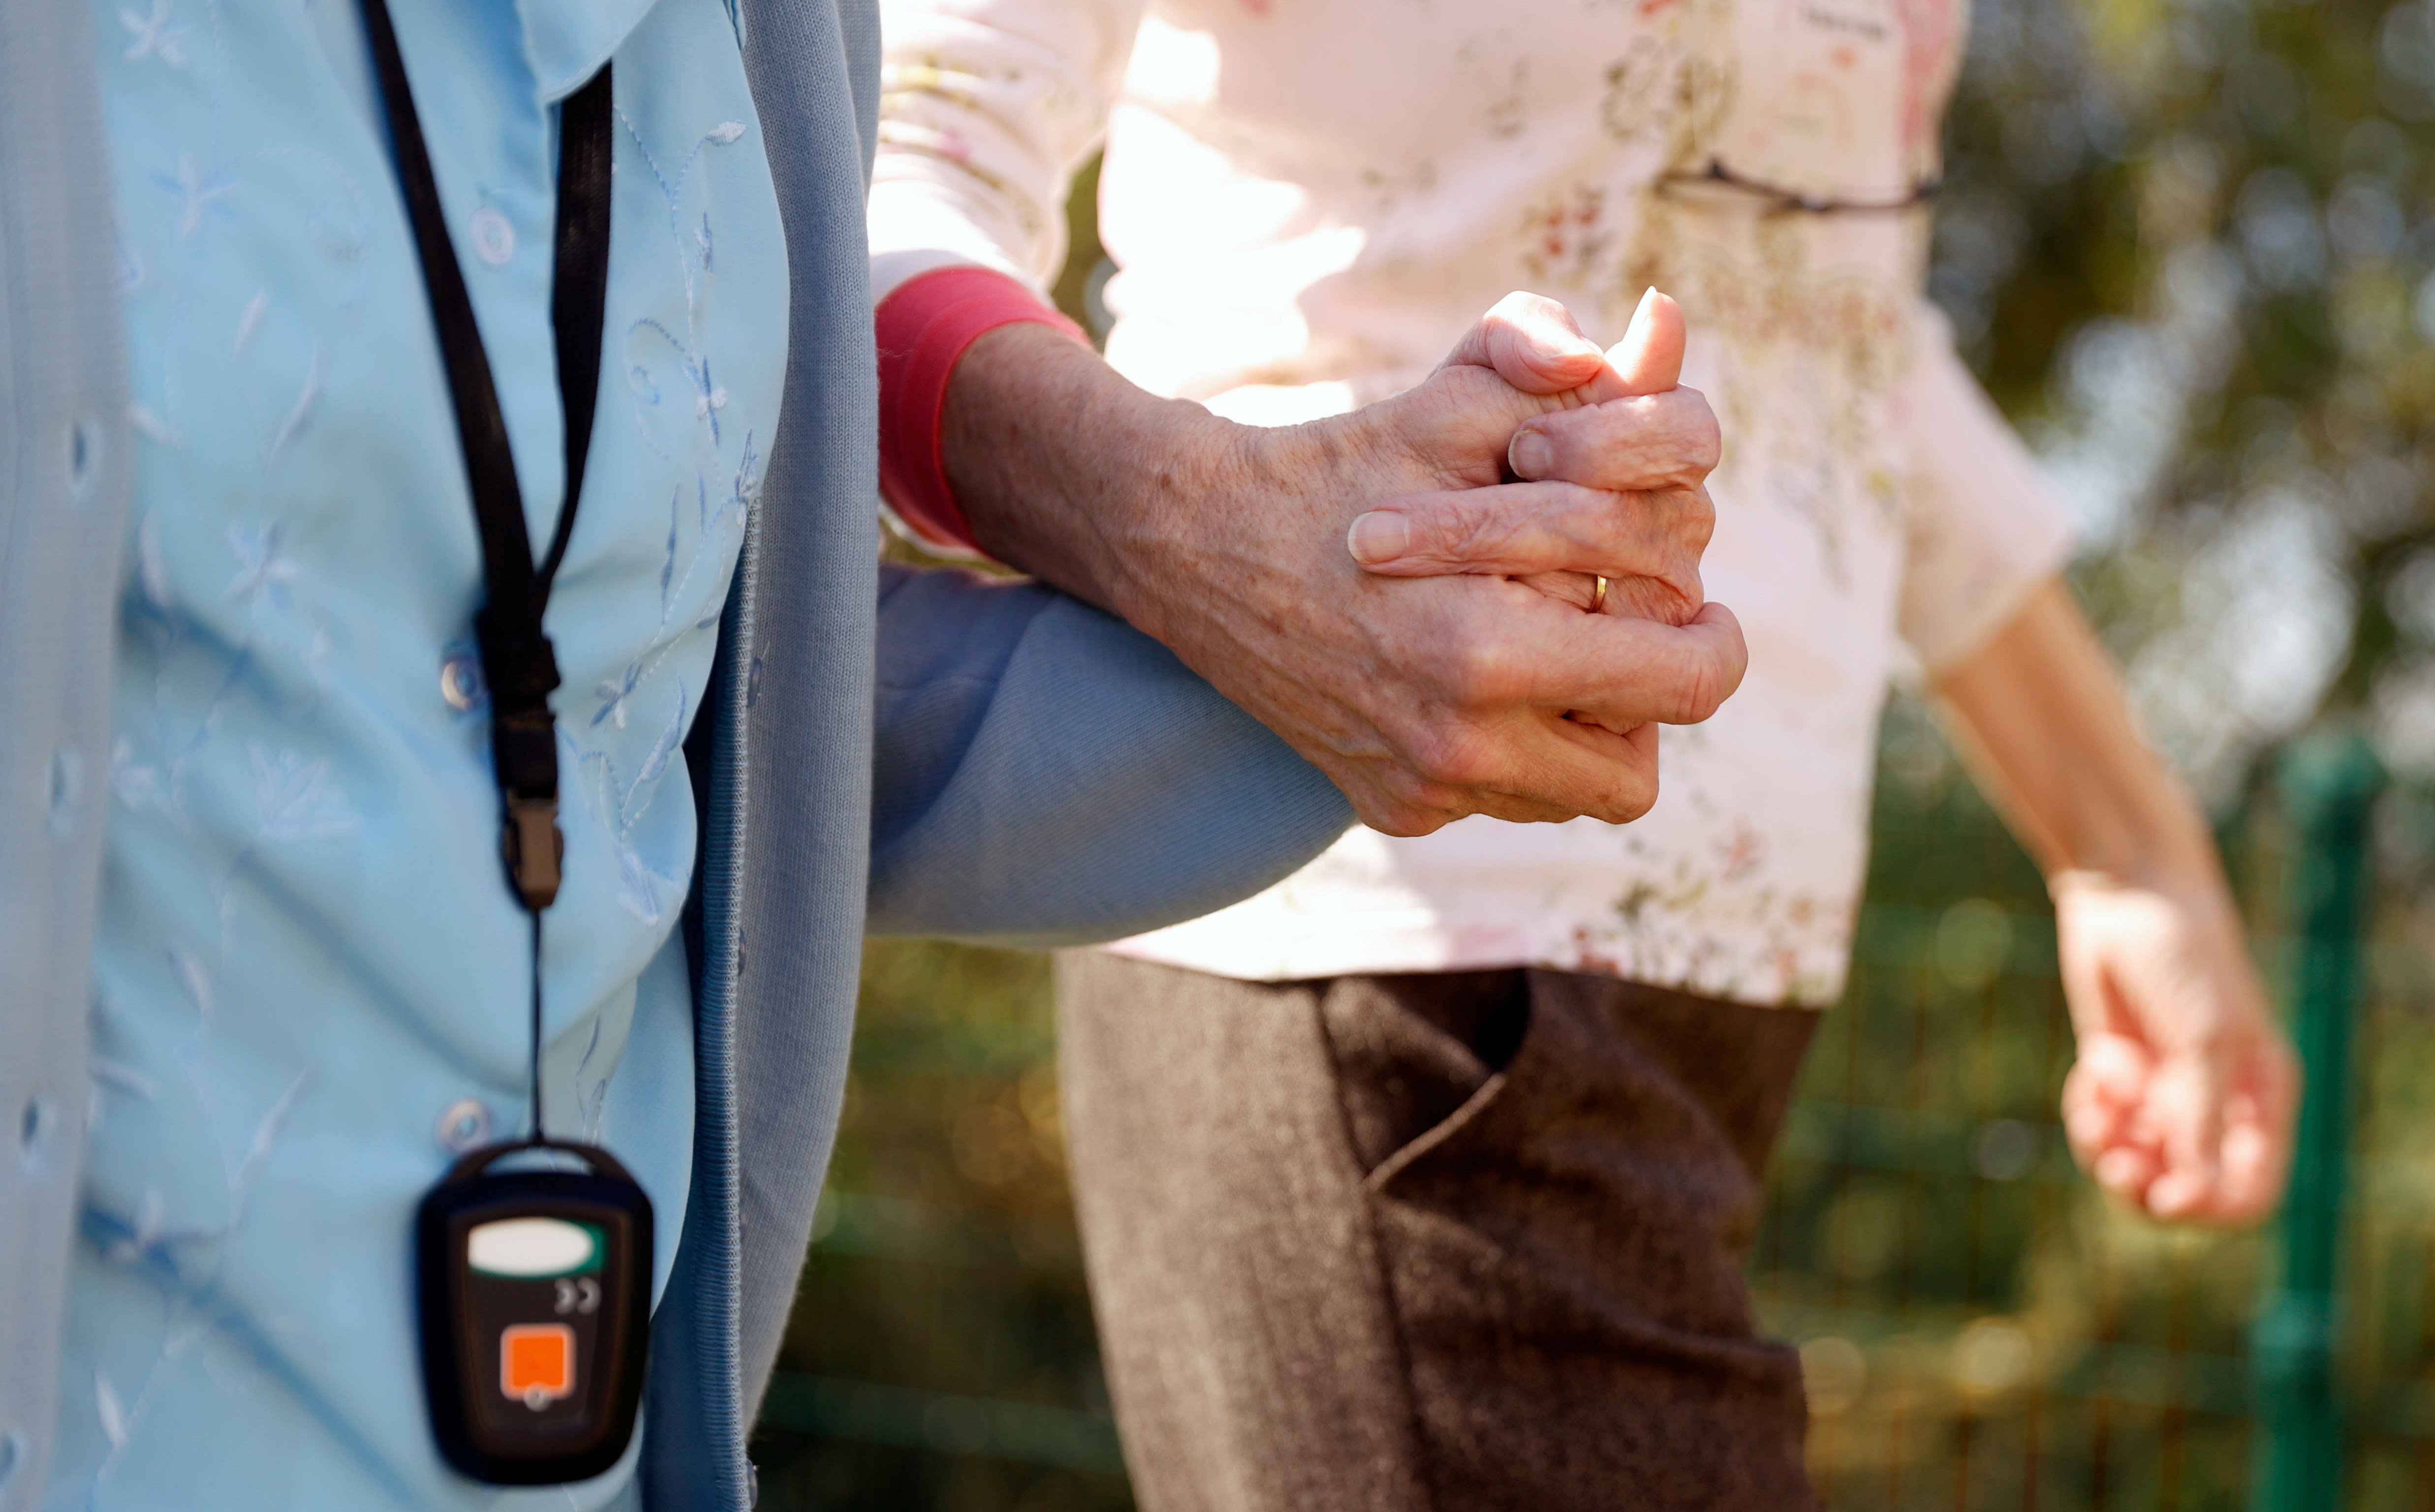 Govt promises social care proposals within six months